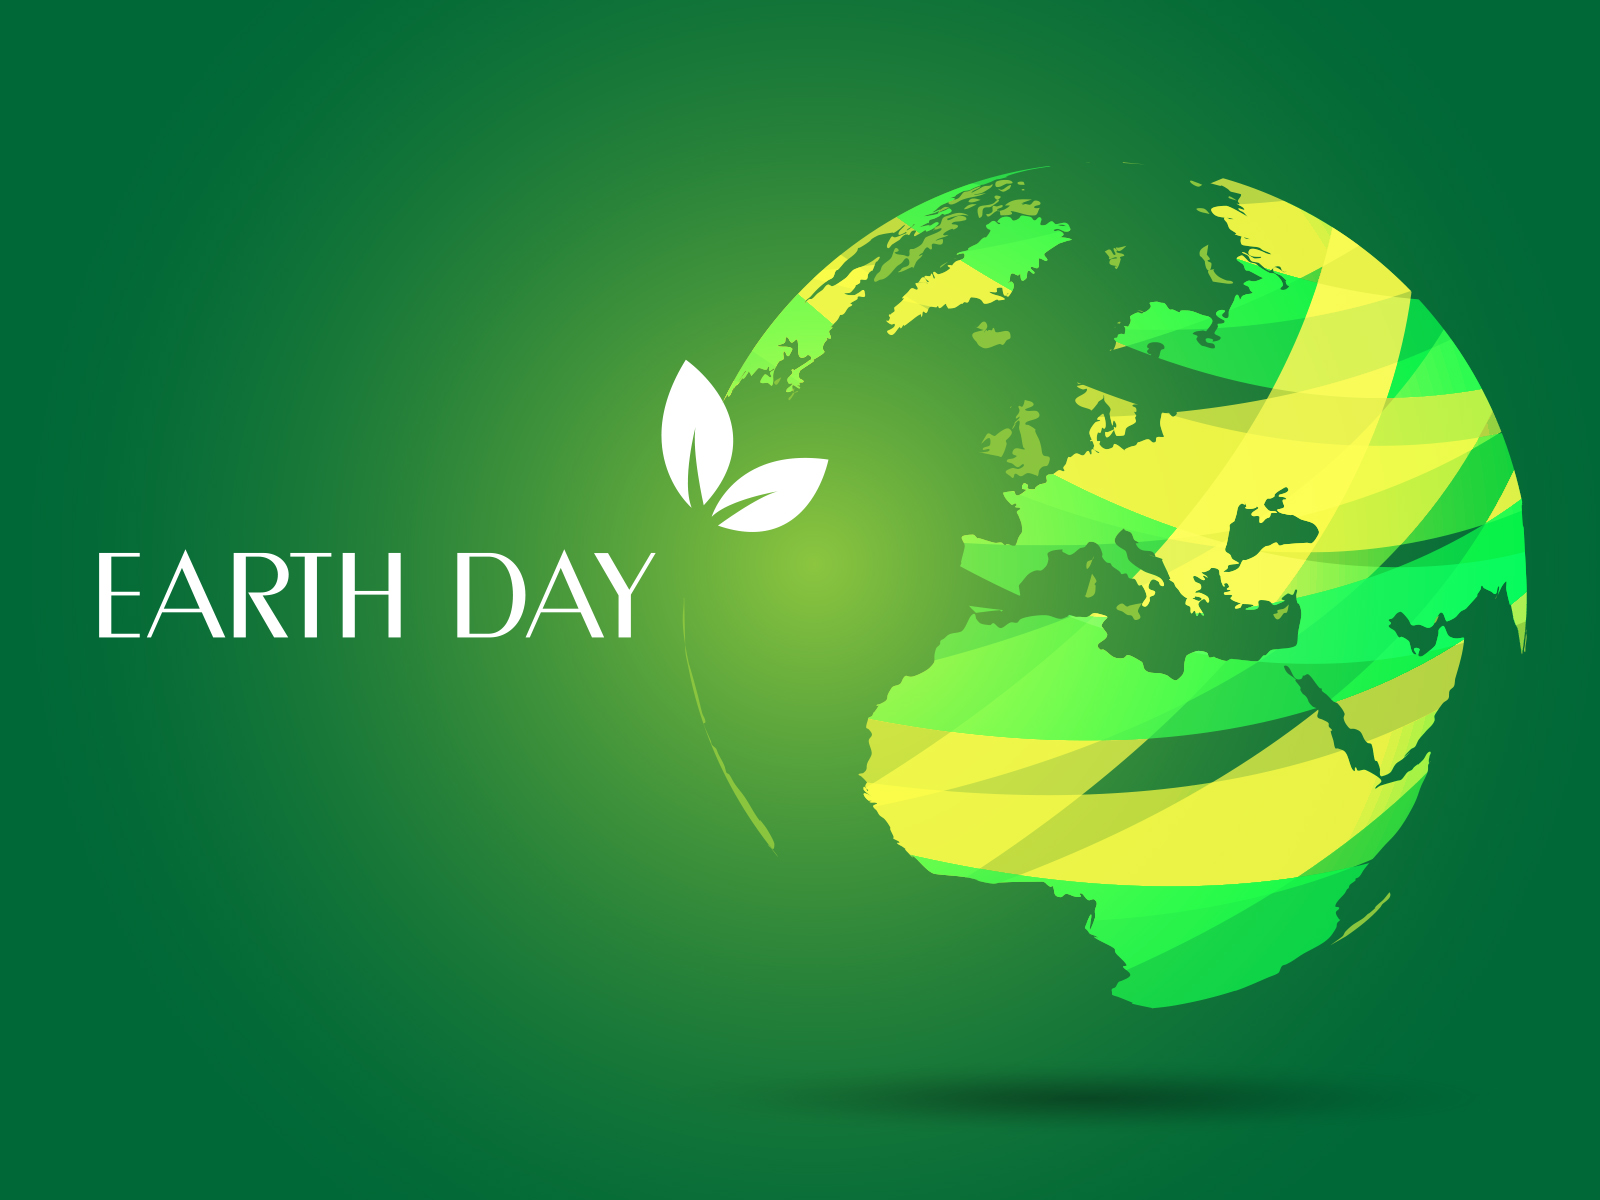 Earth Day Ppt Backgrounds 3d Green White Templates